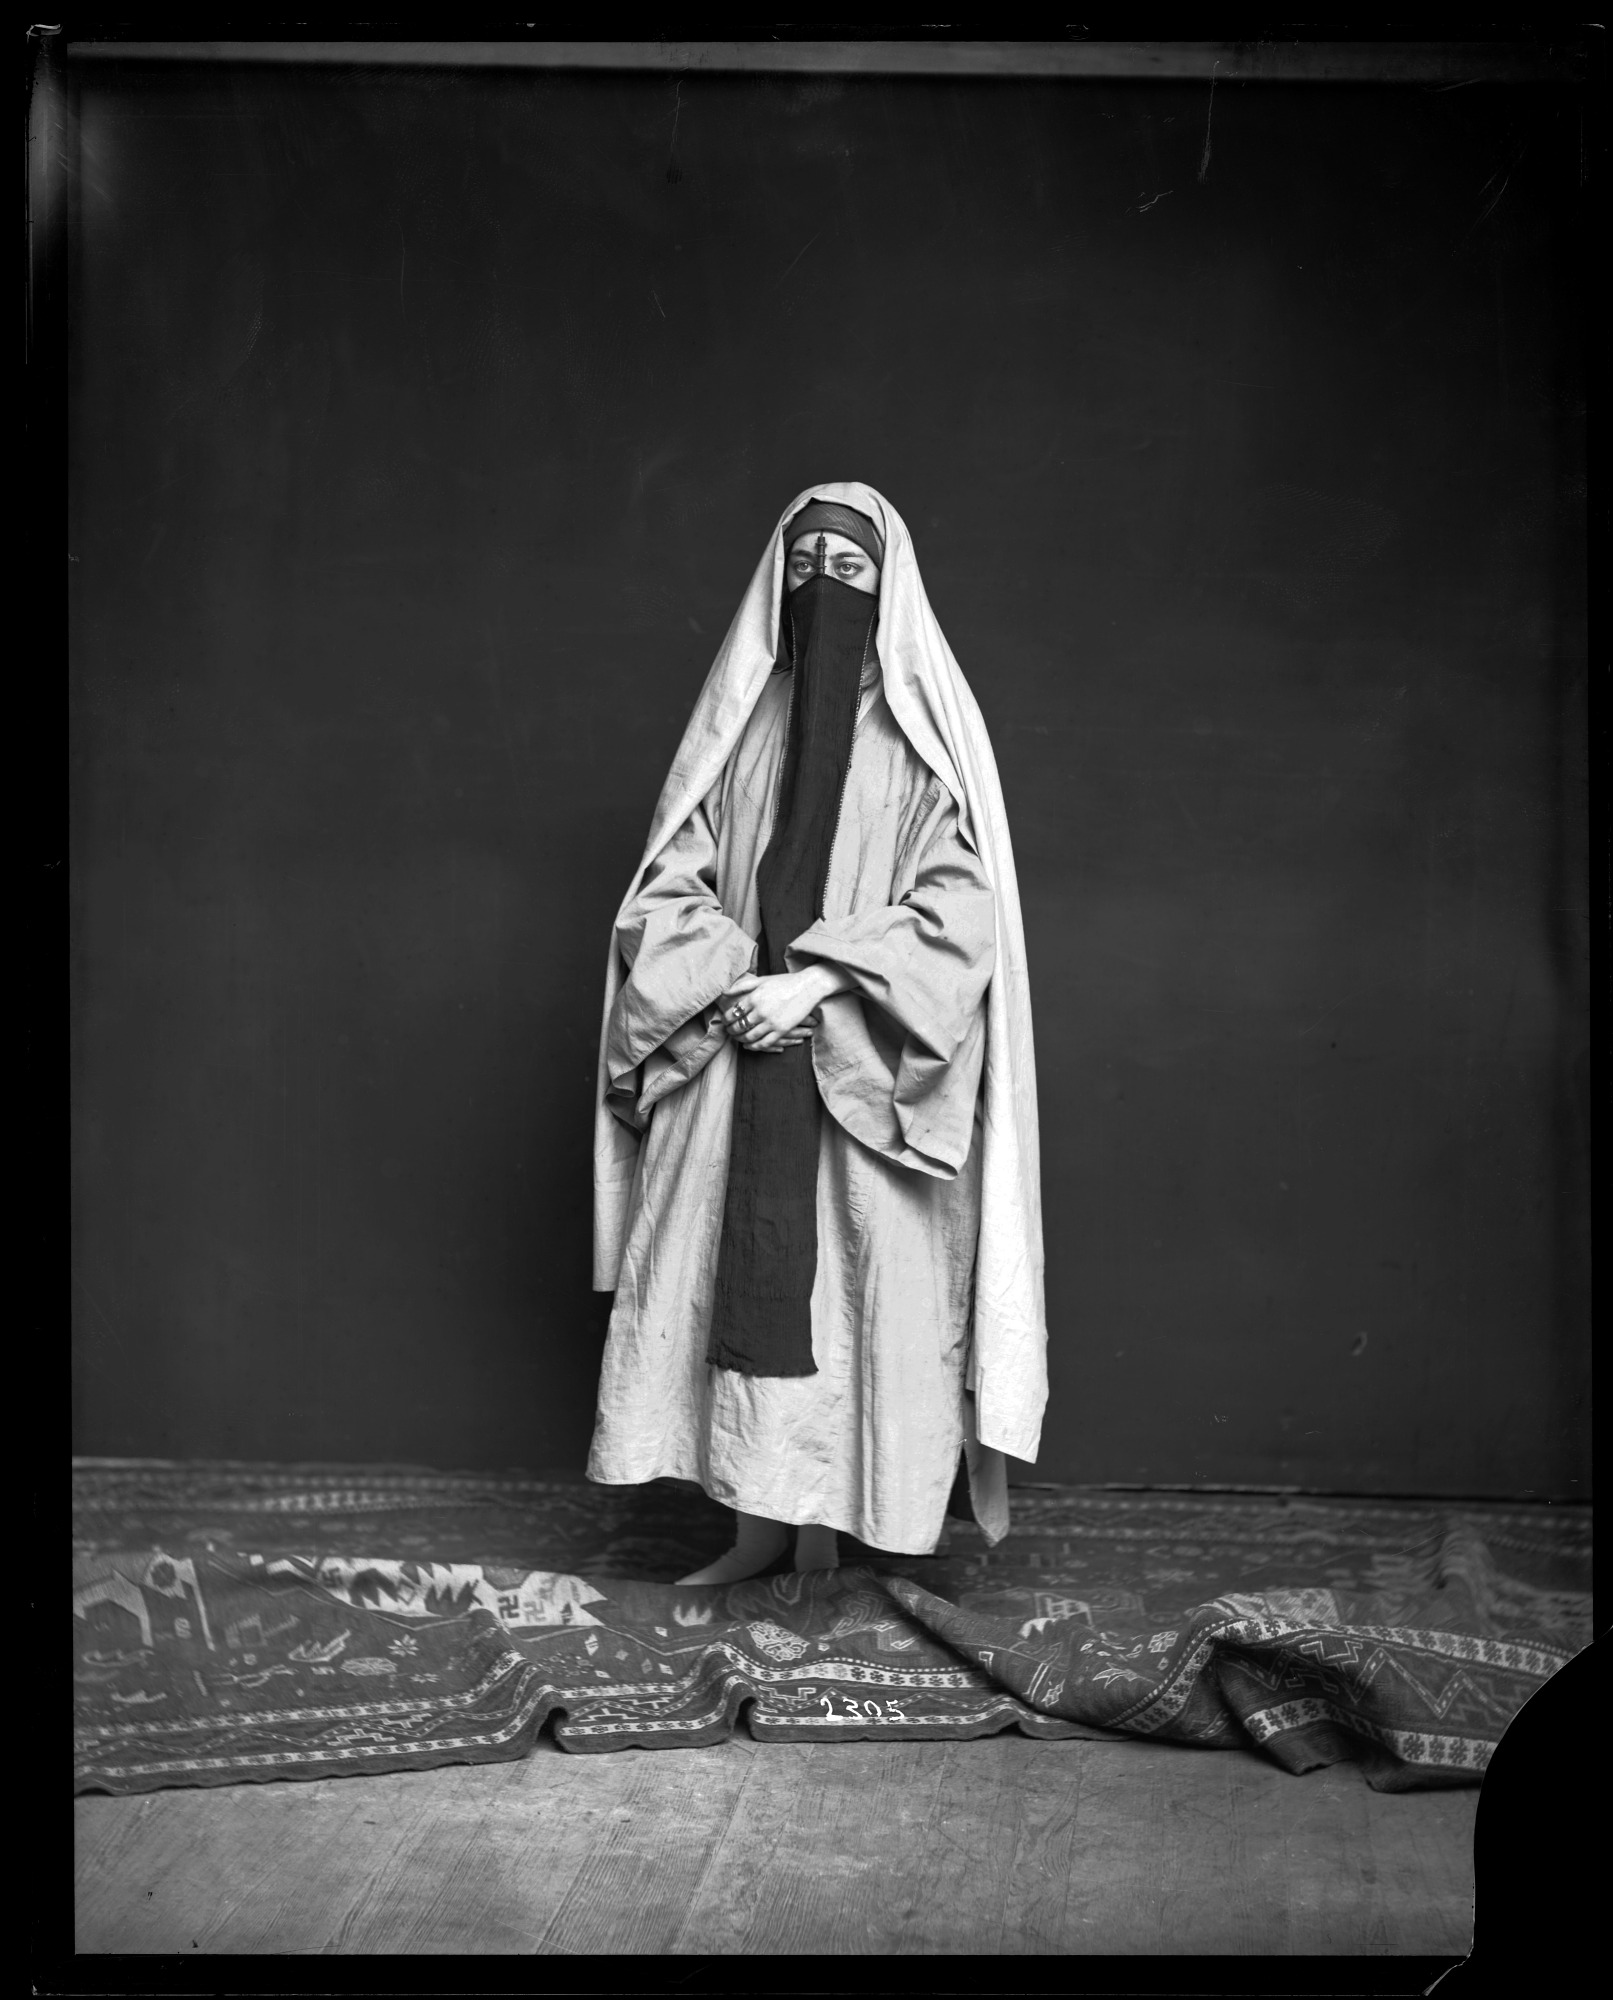 Unidentified Female Models Traditional Middle Eastern Costume with Yashmak (Veil)